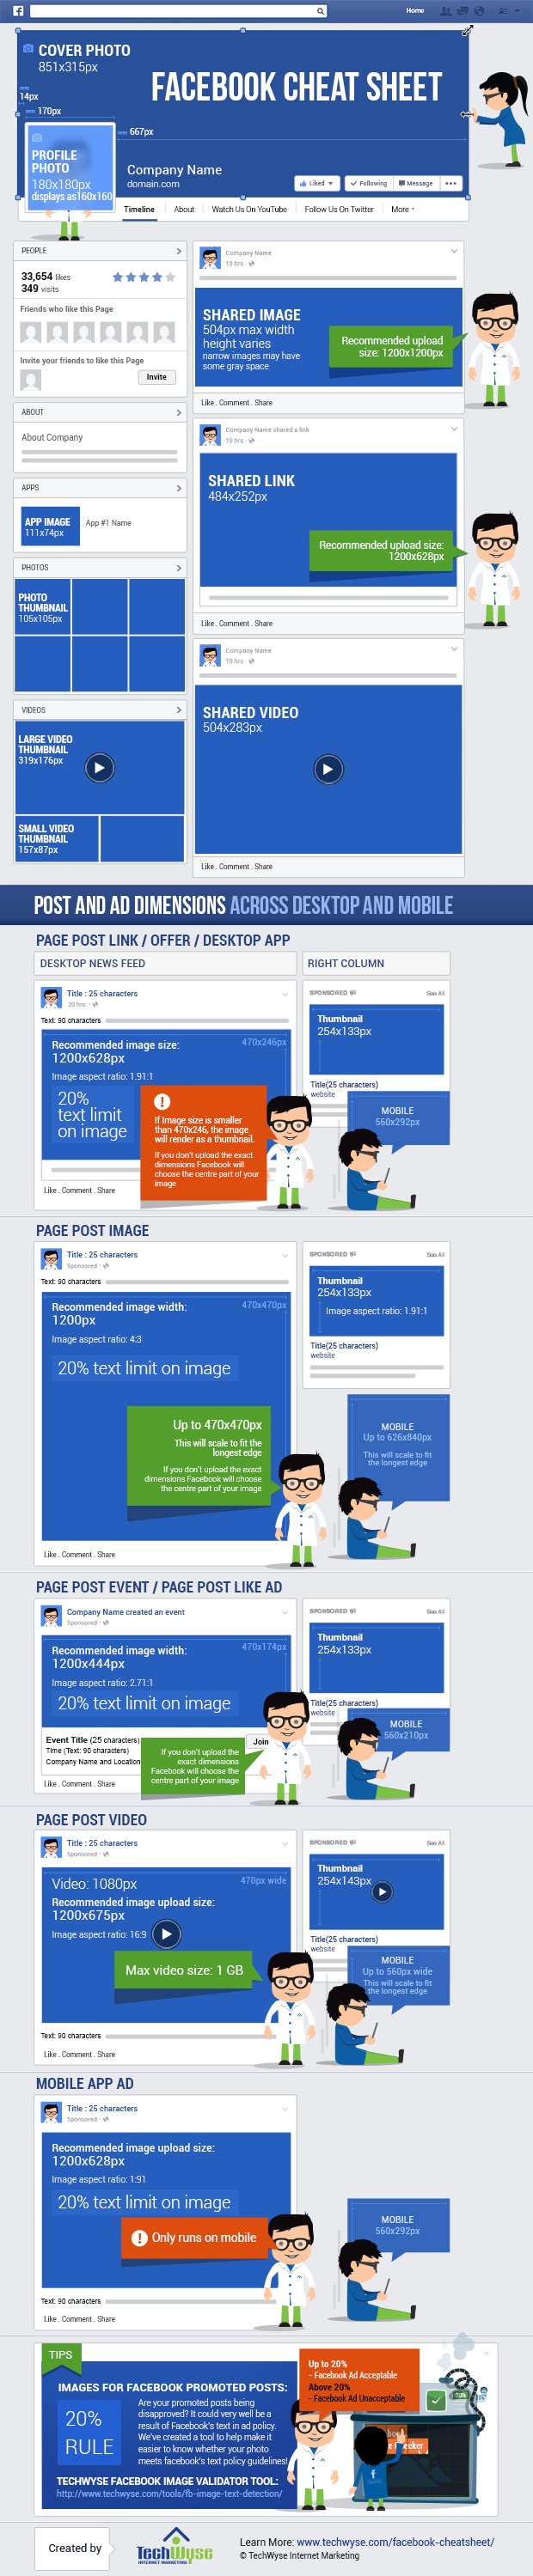 facebook cheat sheet infographic